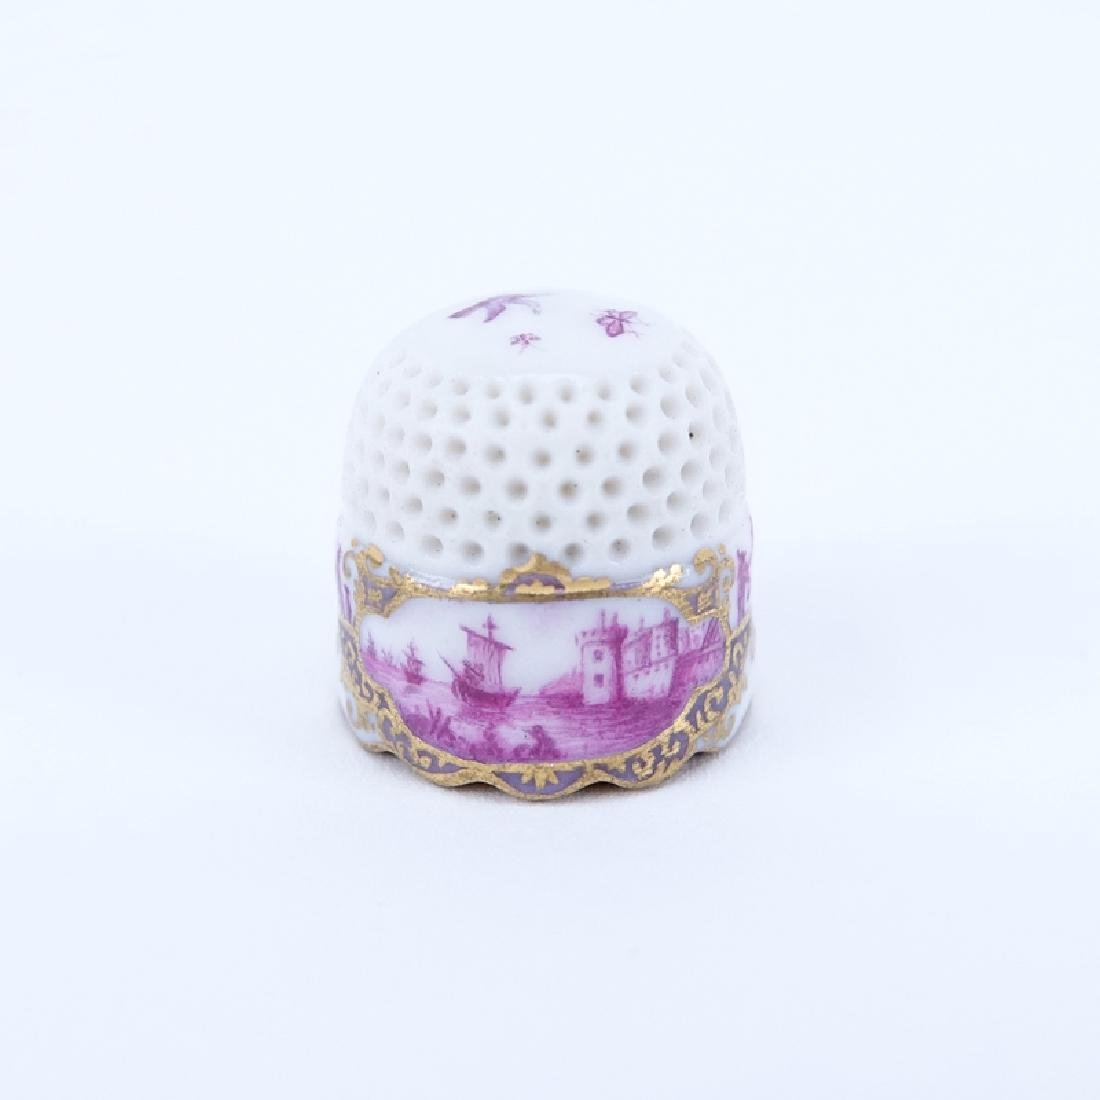 Mid 18th Century Meissen Porcelain Thimble. The upper